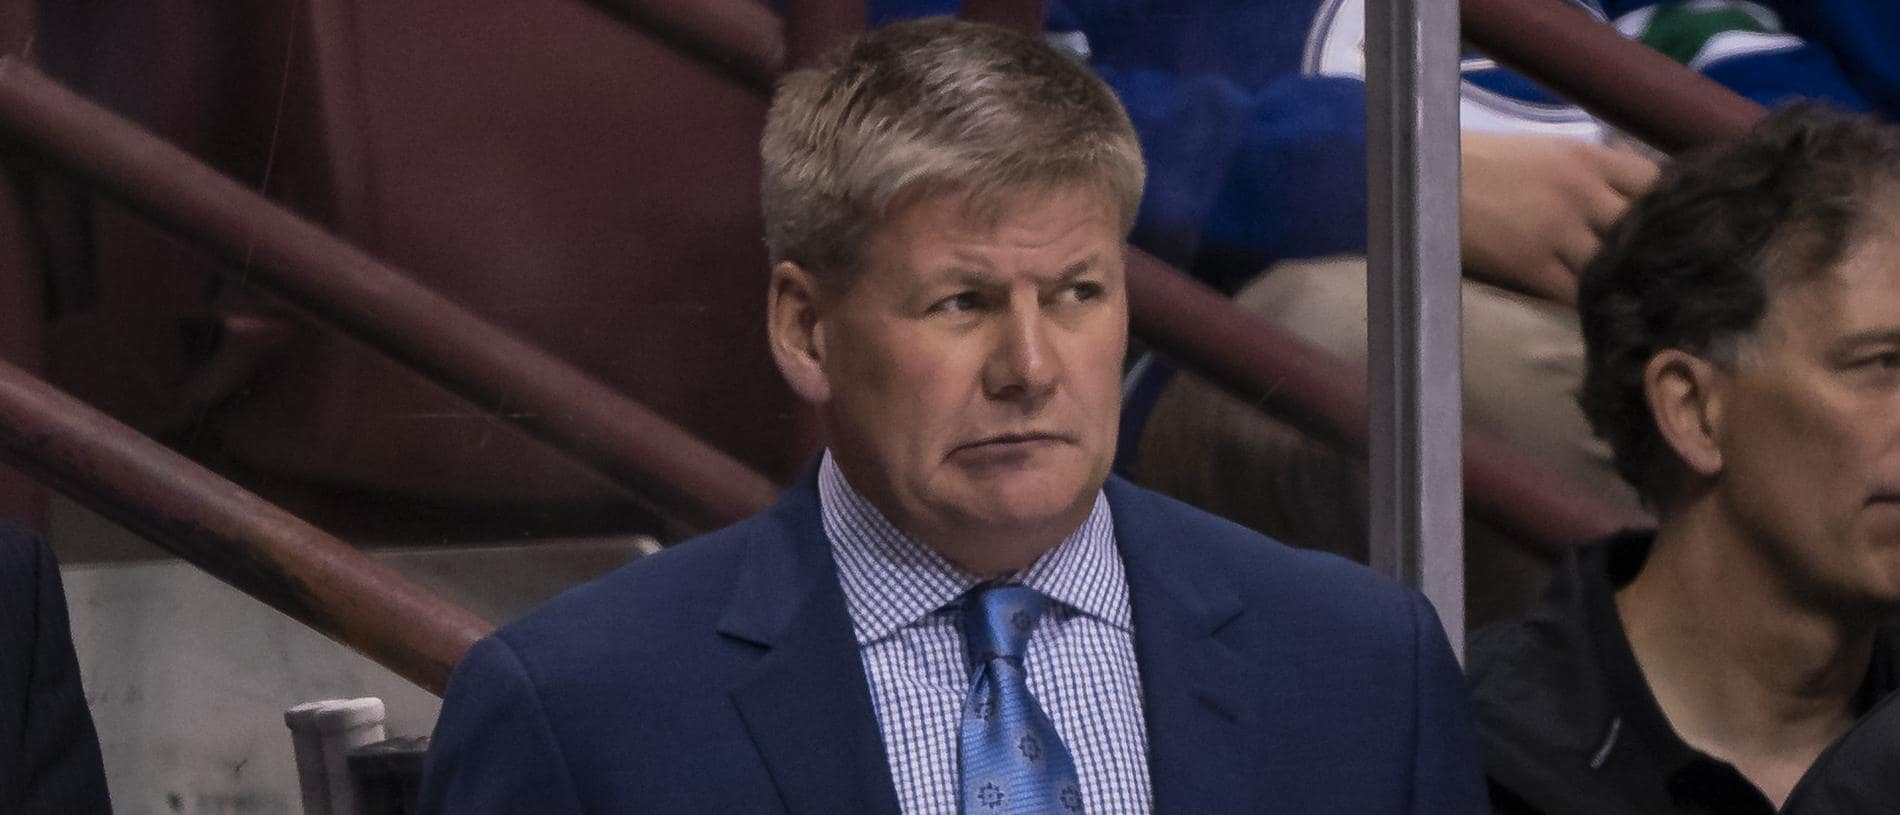 (FILES) In this file photo taken on October 3, 2018 Head Coach Bill Peters is seen during NHL action against the Vancouver Canucks in the NHL  at Rogers Arena in Vancouver, British Columbia, Canada. - Calgary Flames coach Bill Peters is under investigation after being accused of using racial slurs against Nigerian-born player Akim Aliu a decade ago, the National Hockey League confirmed on November 26, 2019. The NHL said in a statement Peters was being probed after Aliu said he was subjected to racist language during the 2009-2010 season while playing for American Hockey League (AHL) side Rockford IceHogs. (Photo by Rich Lam / GETTY IMAGES NORTH AMERICA / AFP)